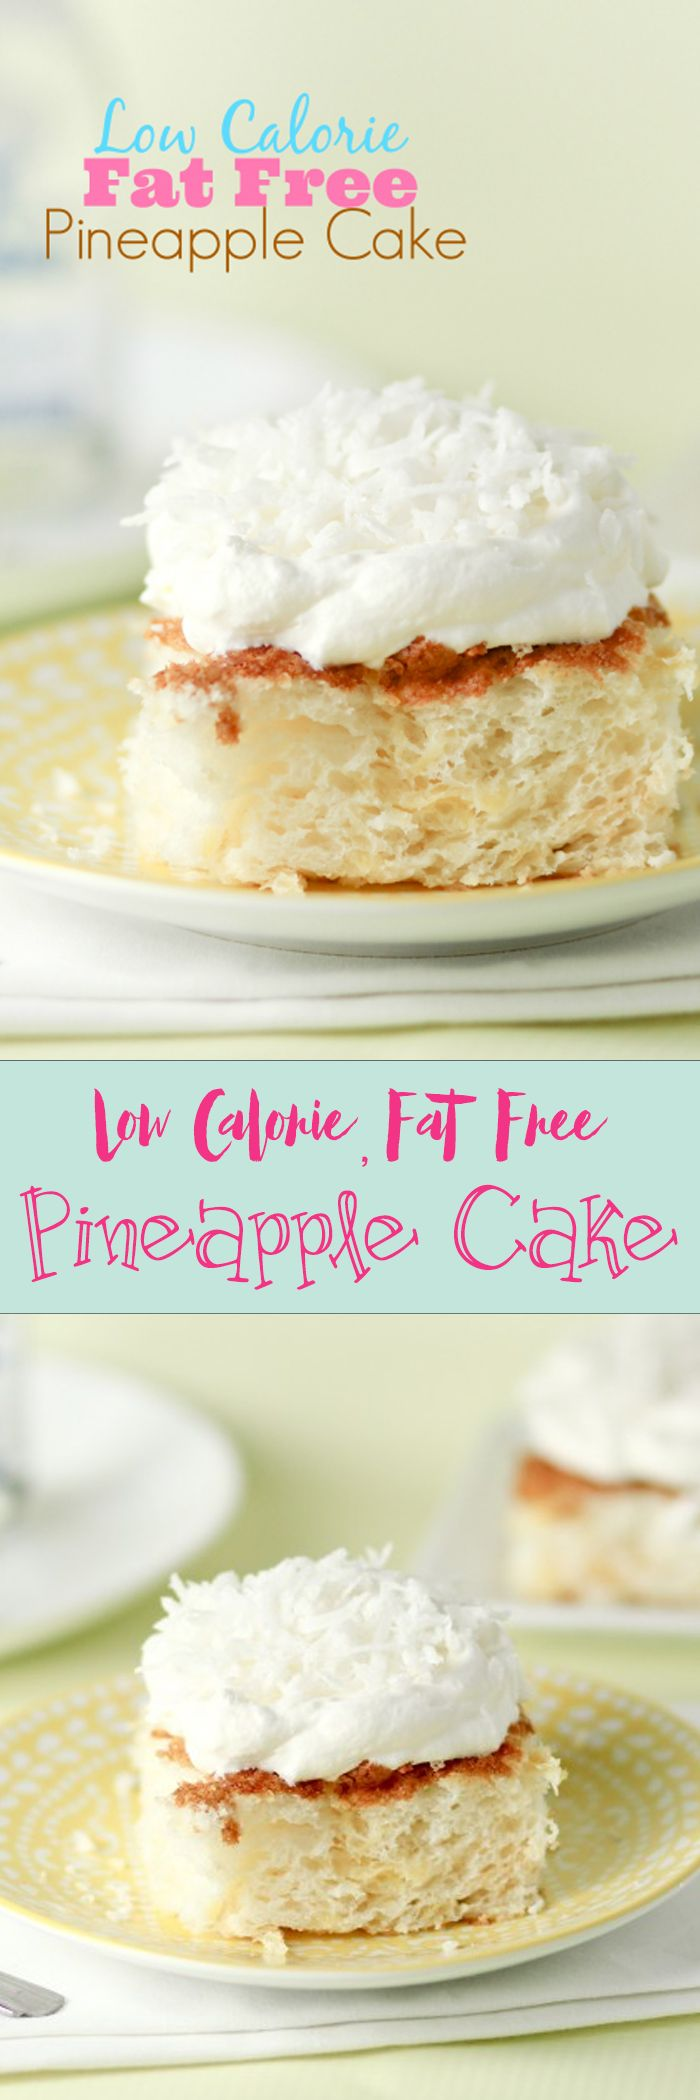 This cake is so yummy, it doesn't taste low calorie! I was shocked to love it -- I make it often, even when I'm not dieting.